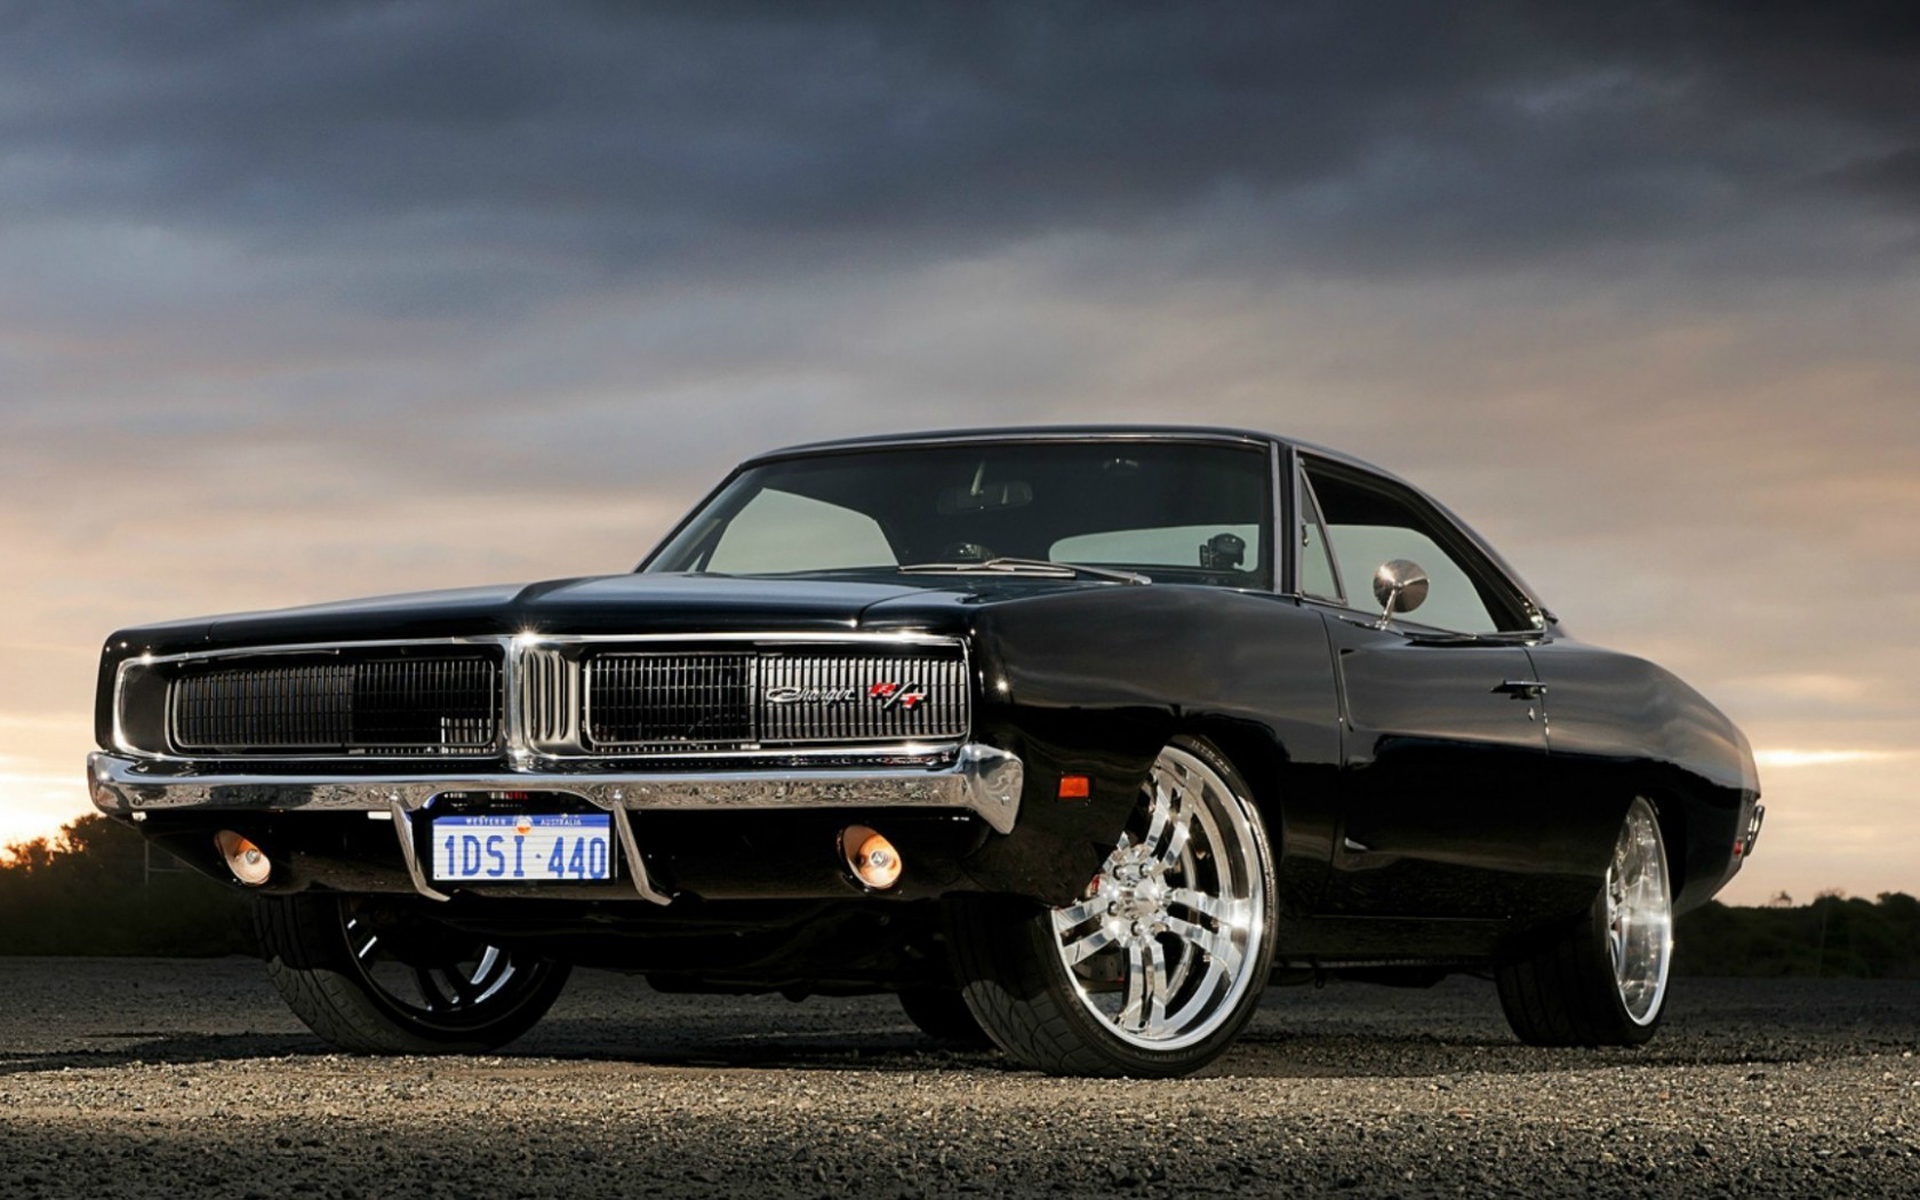 Muscle Car Pics >> Dodge Charger RT Wallpaper - WallpaperSafari